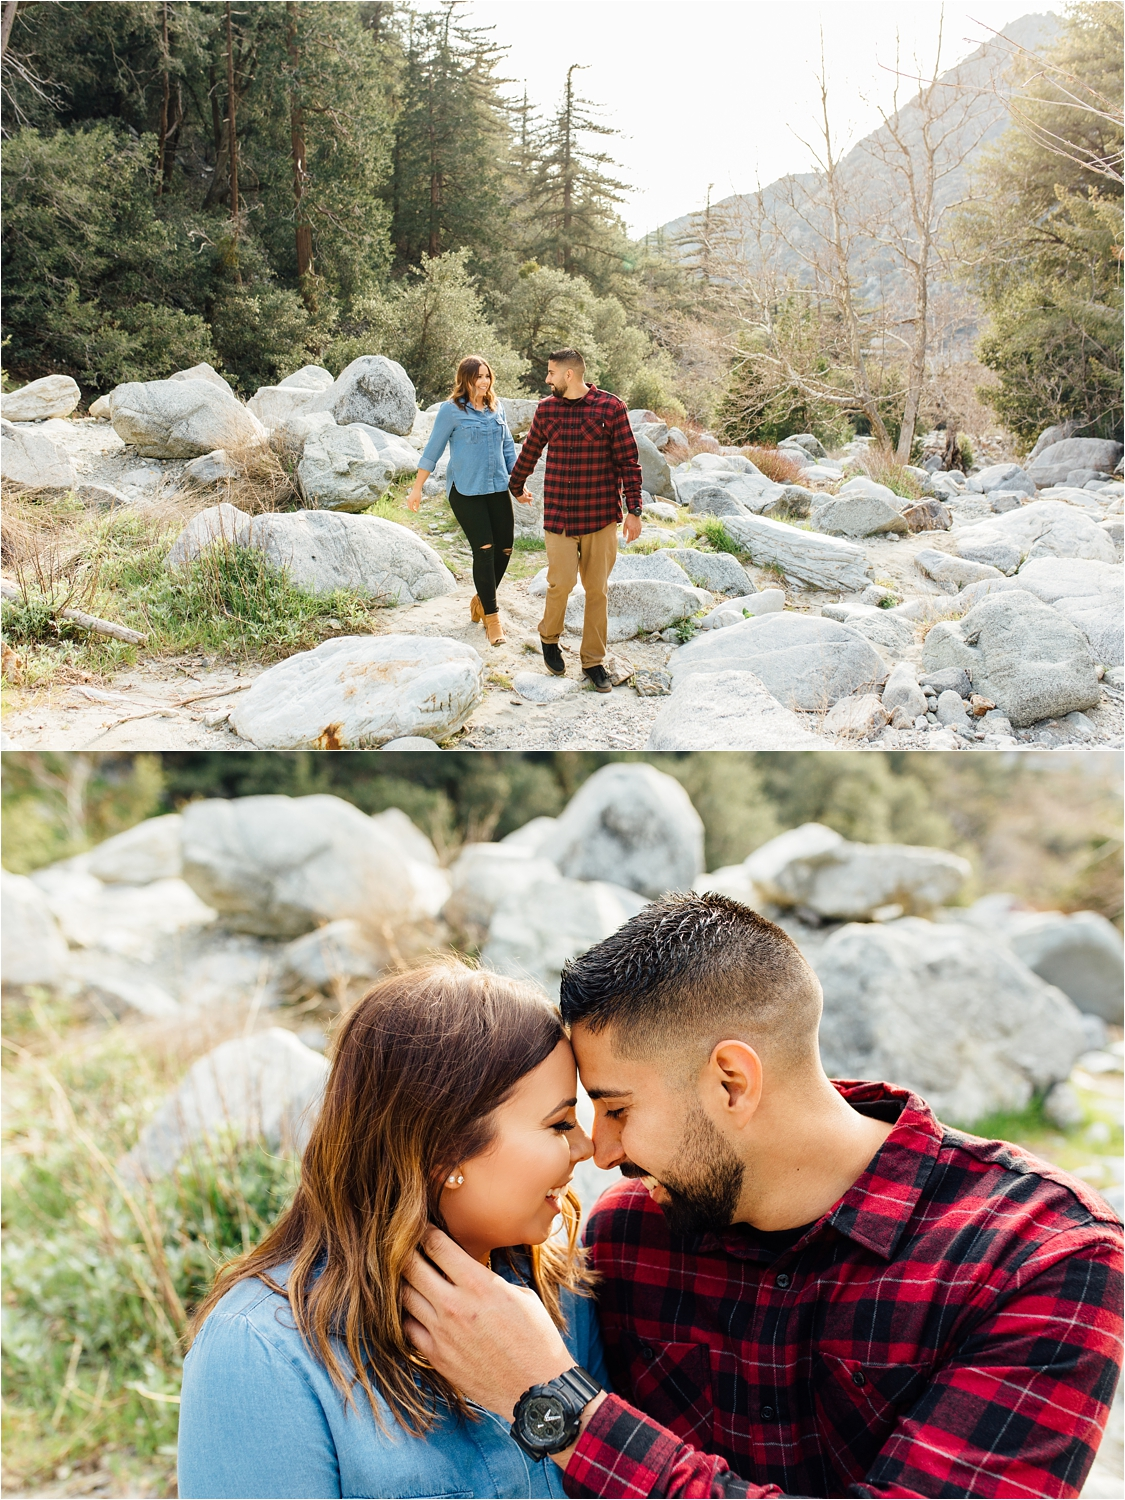 Engagement Session in the Mountains - Mountain Engagement Photographer - http://brittneyhannonphotography.com